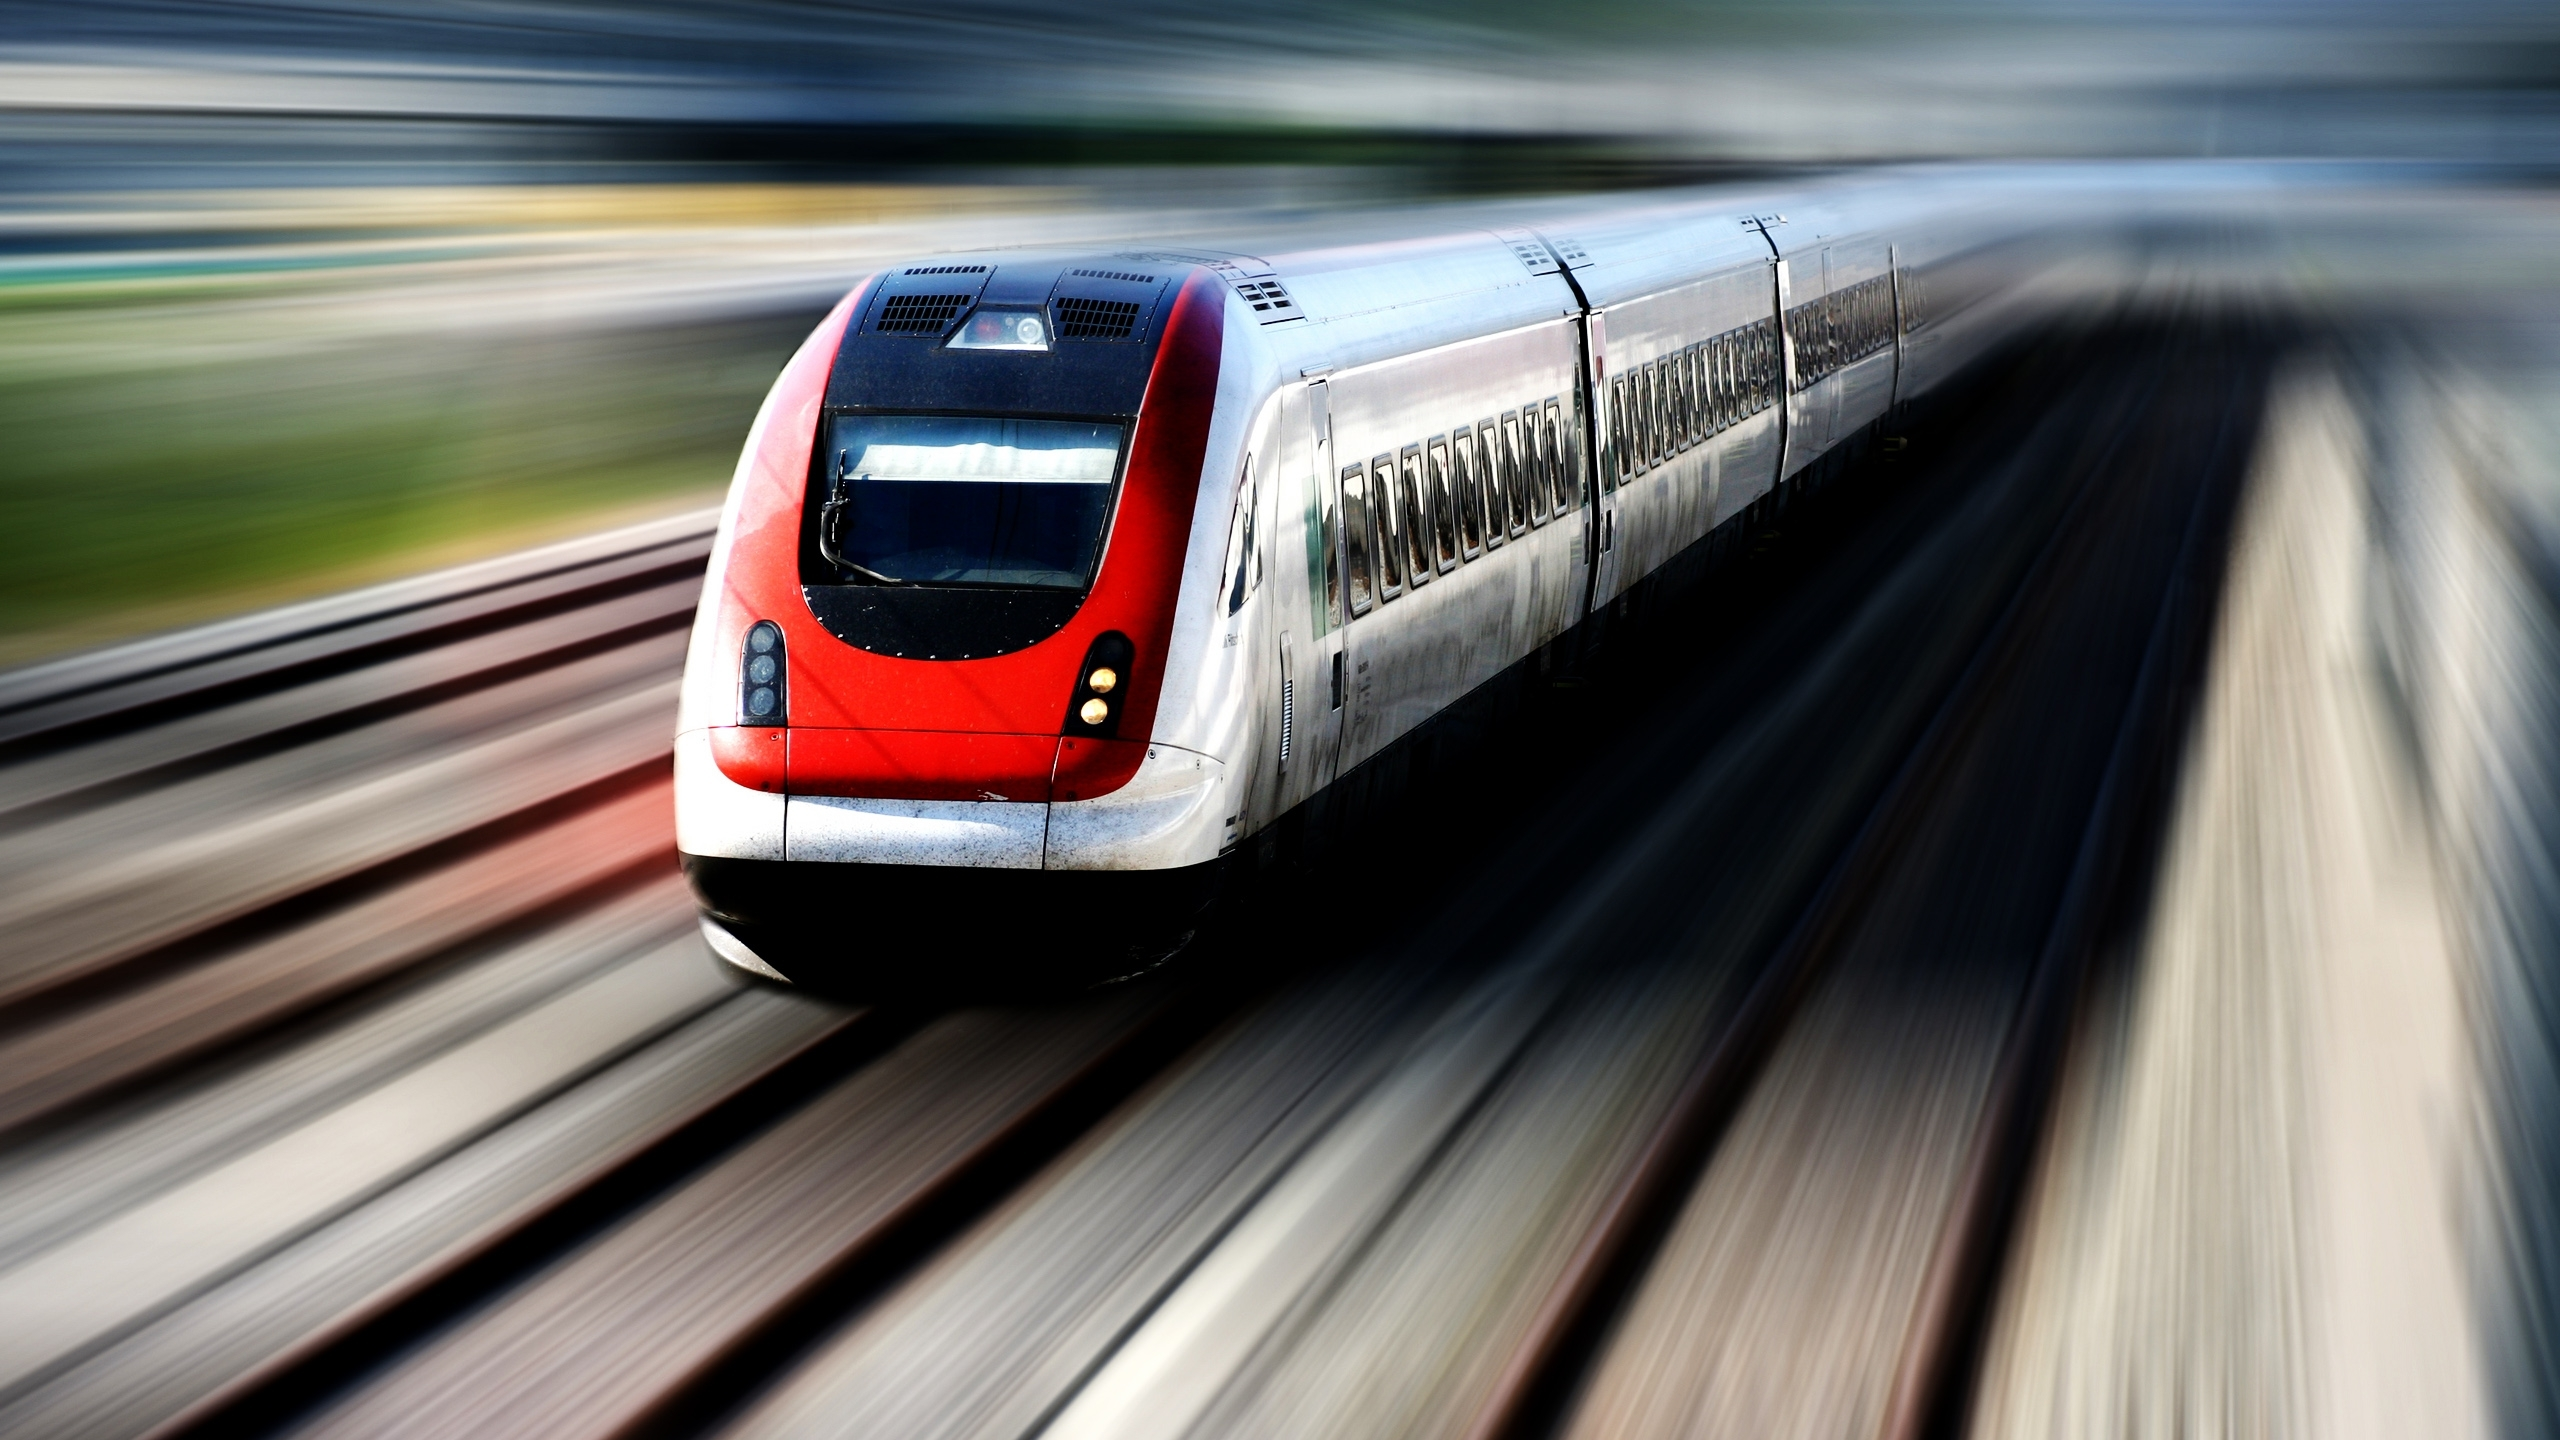 trains motion blur HD Wallpaper